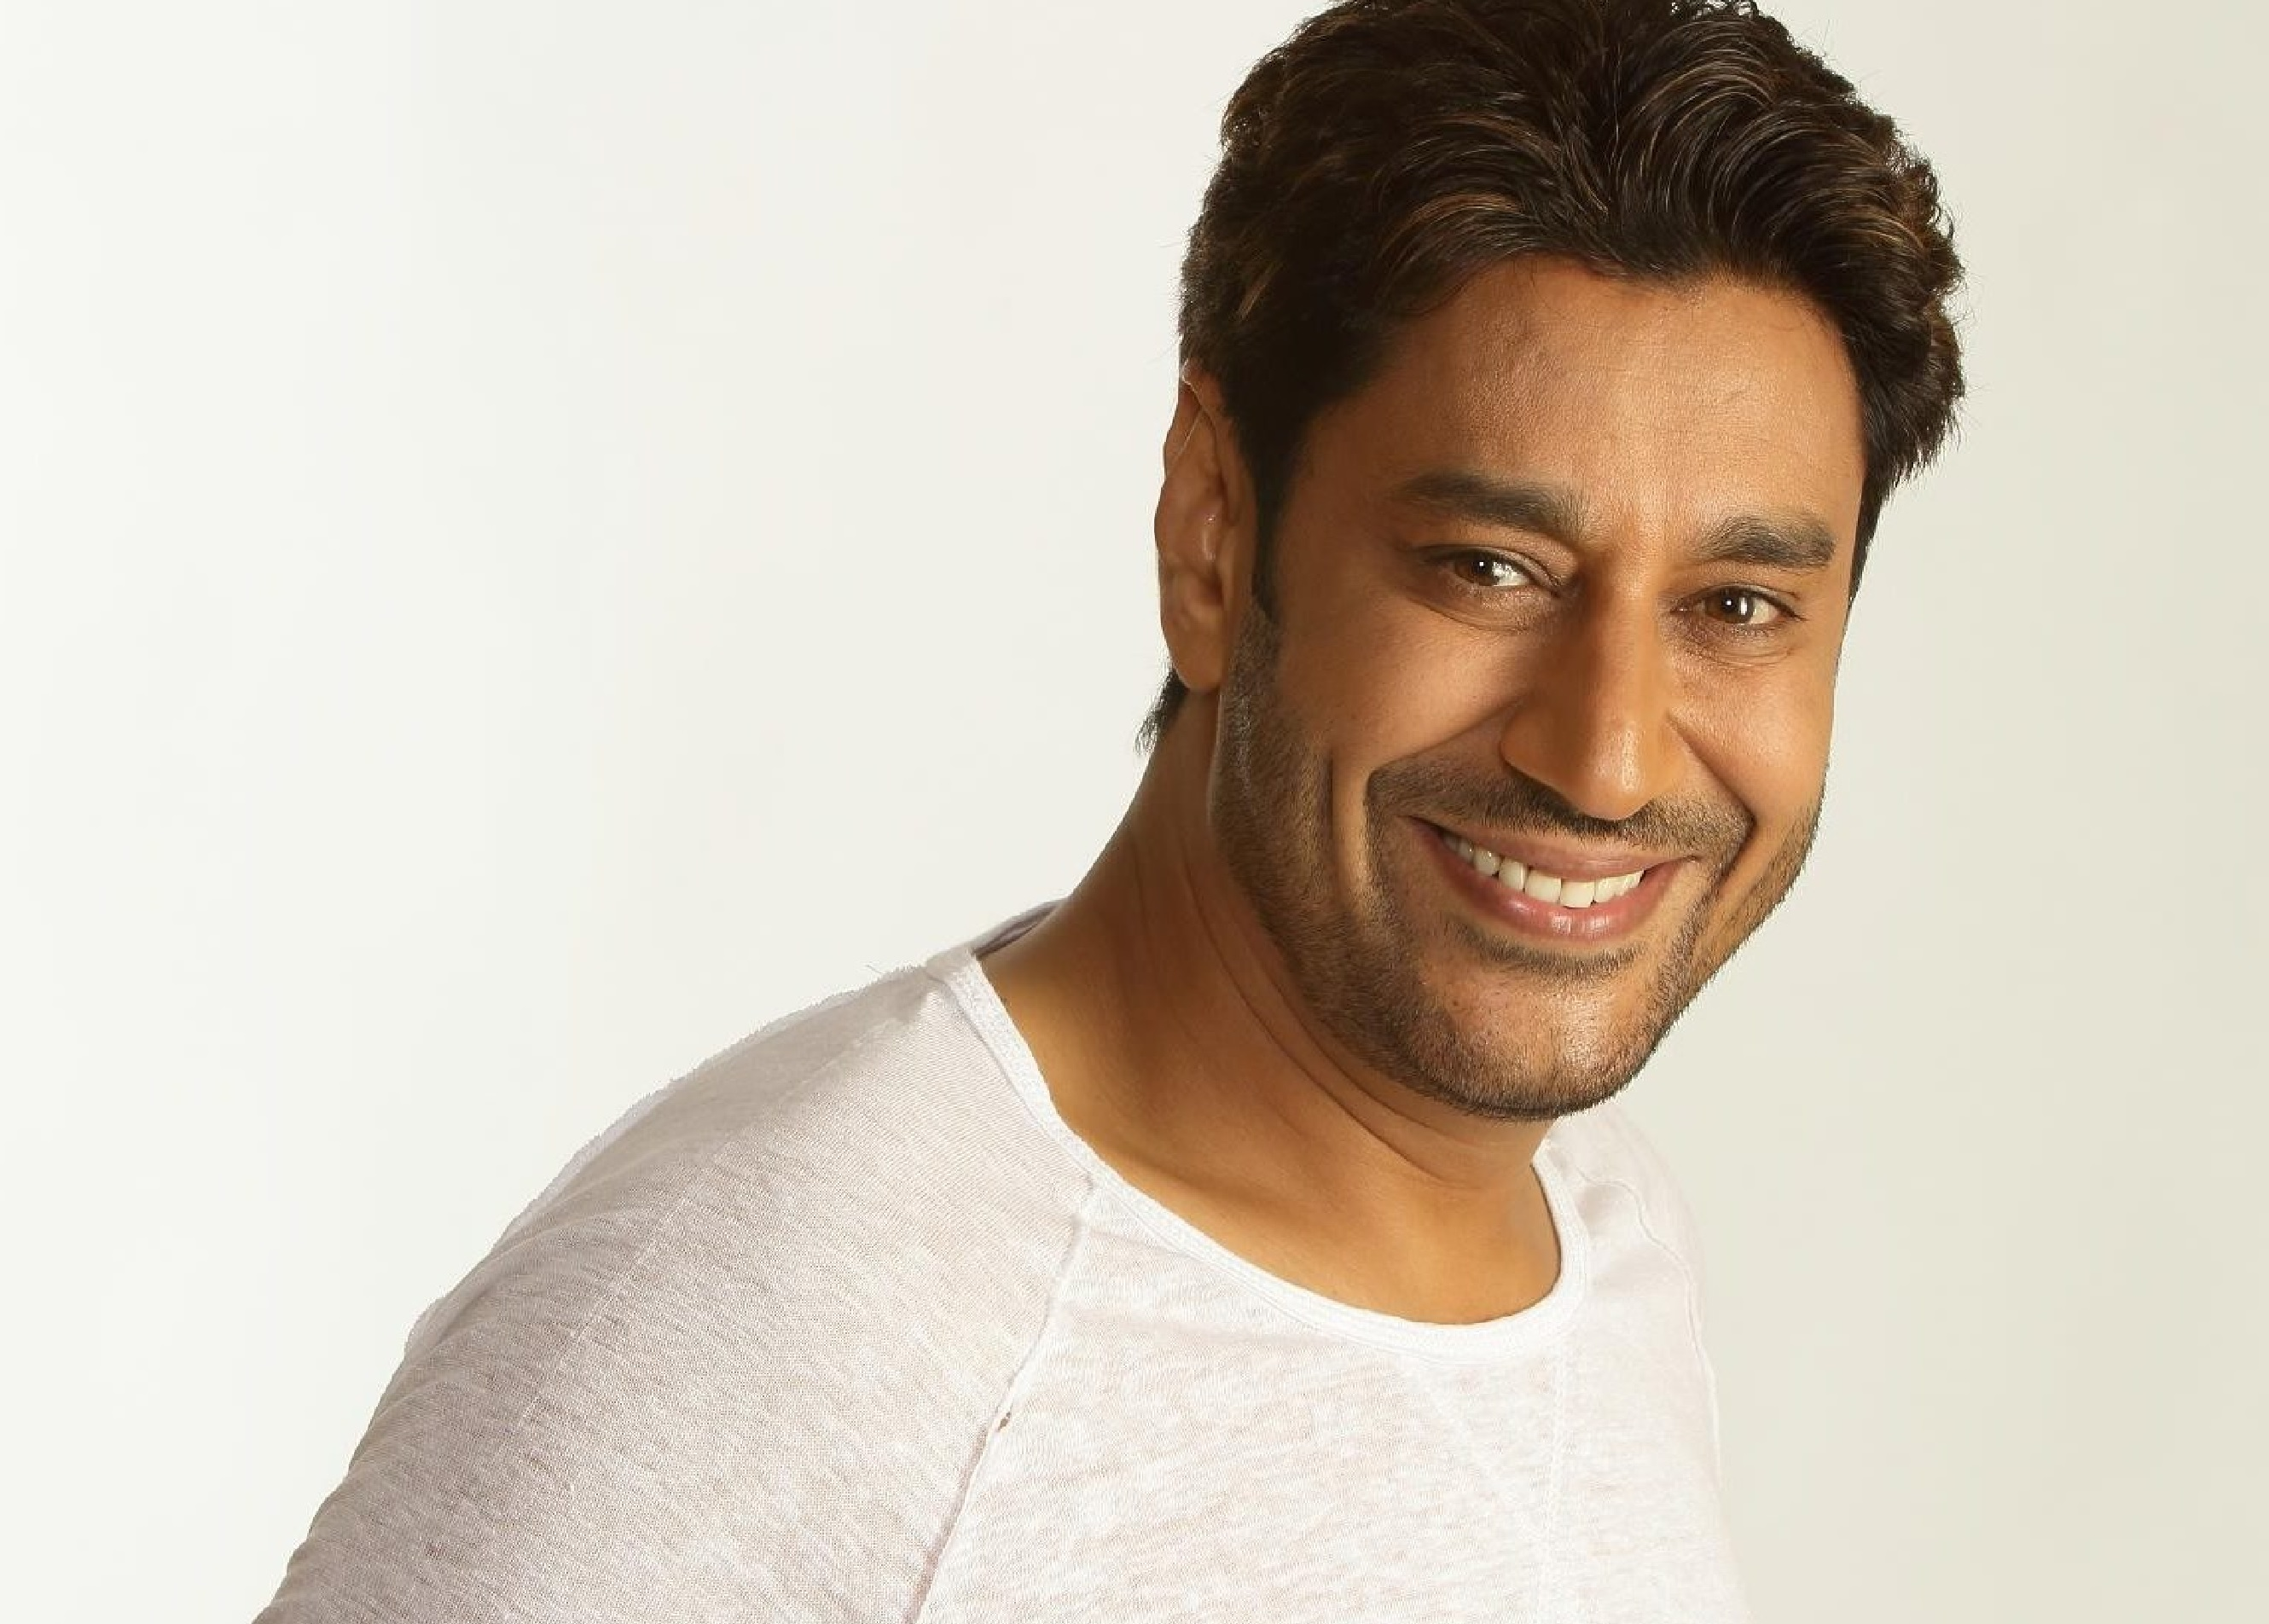 Harbhajan Mann will be launching his new 'Tin Rang' World Tour in Birmingham in March